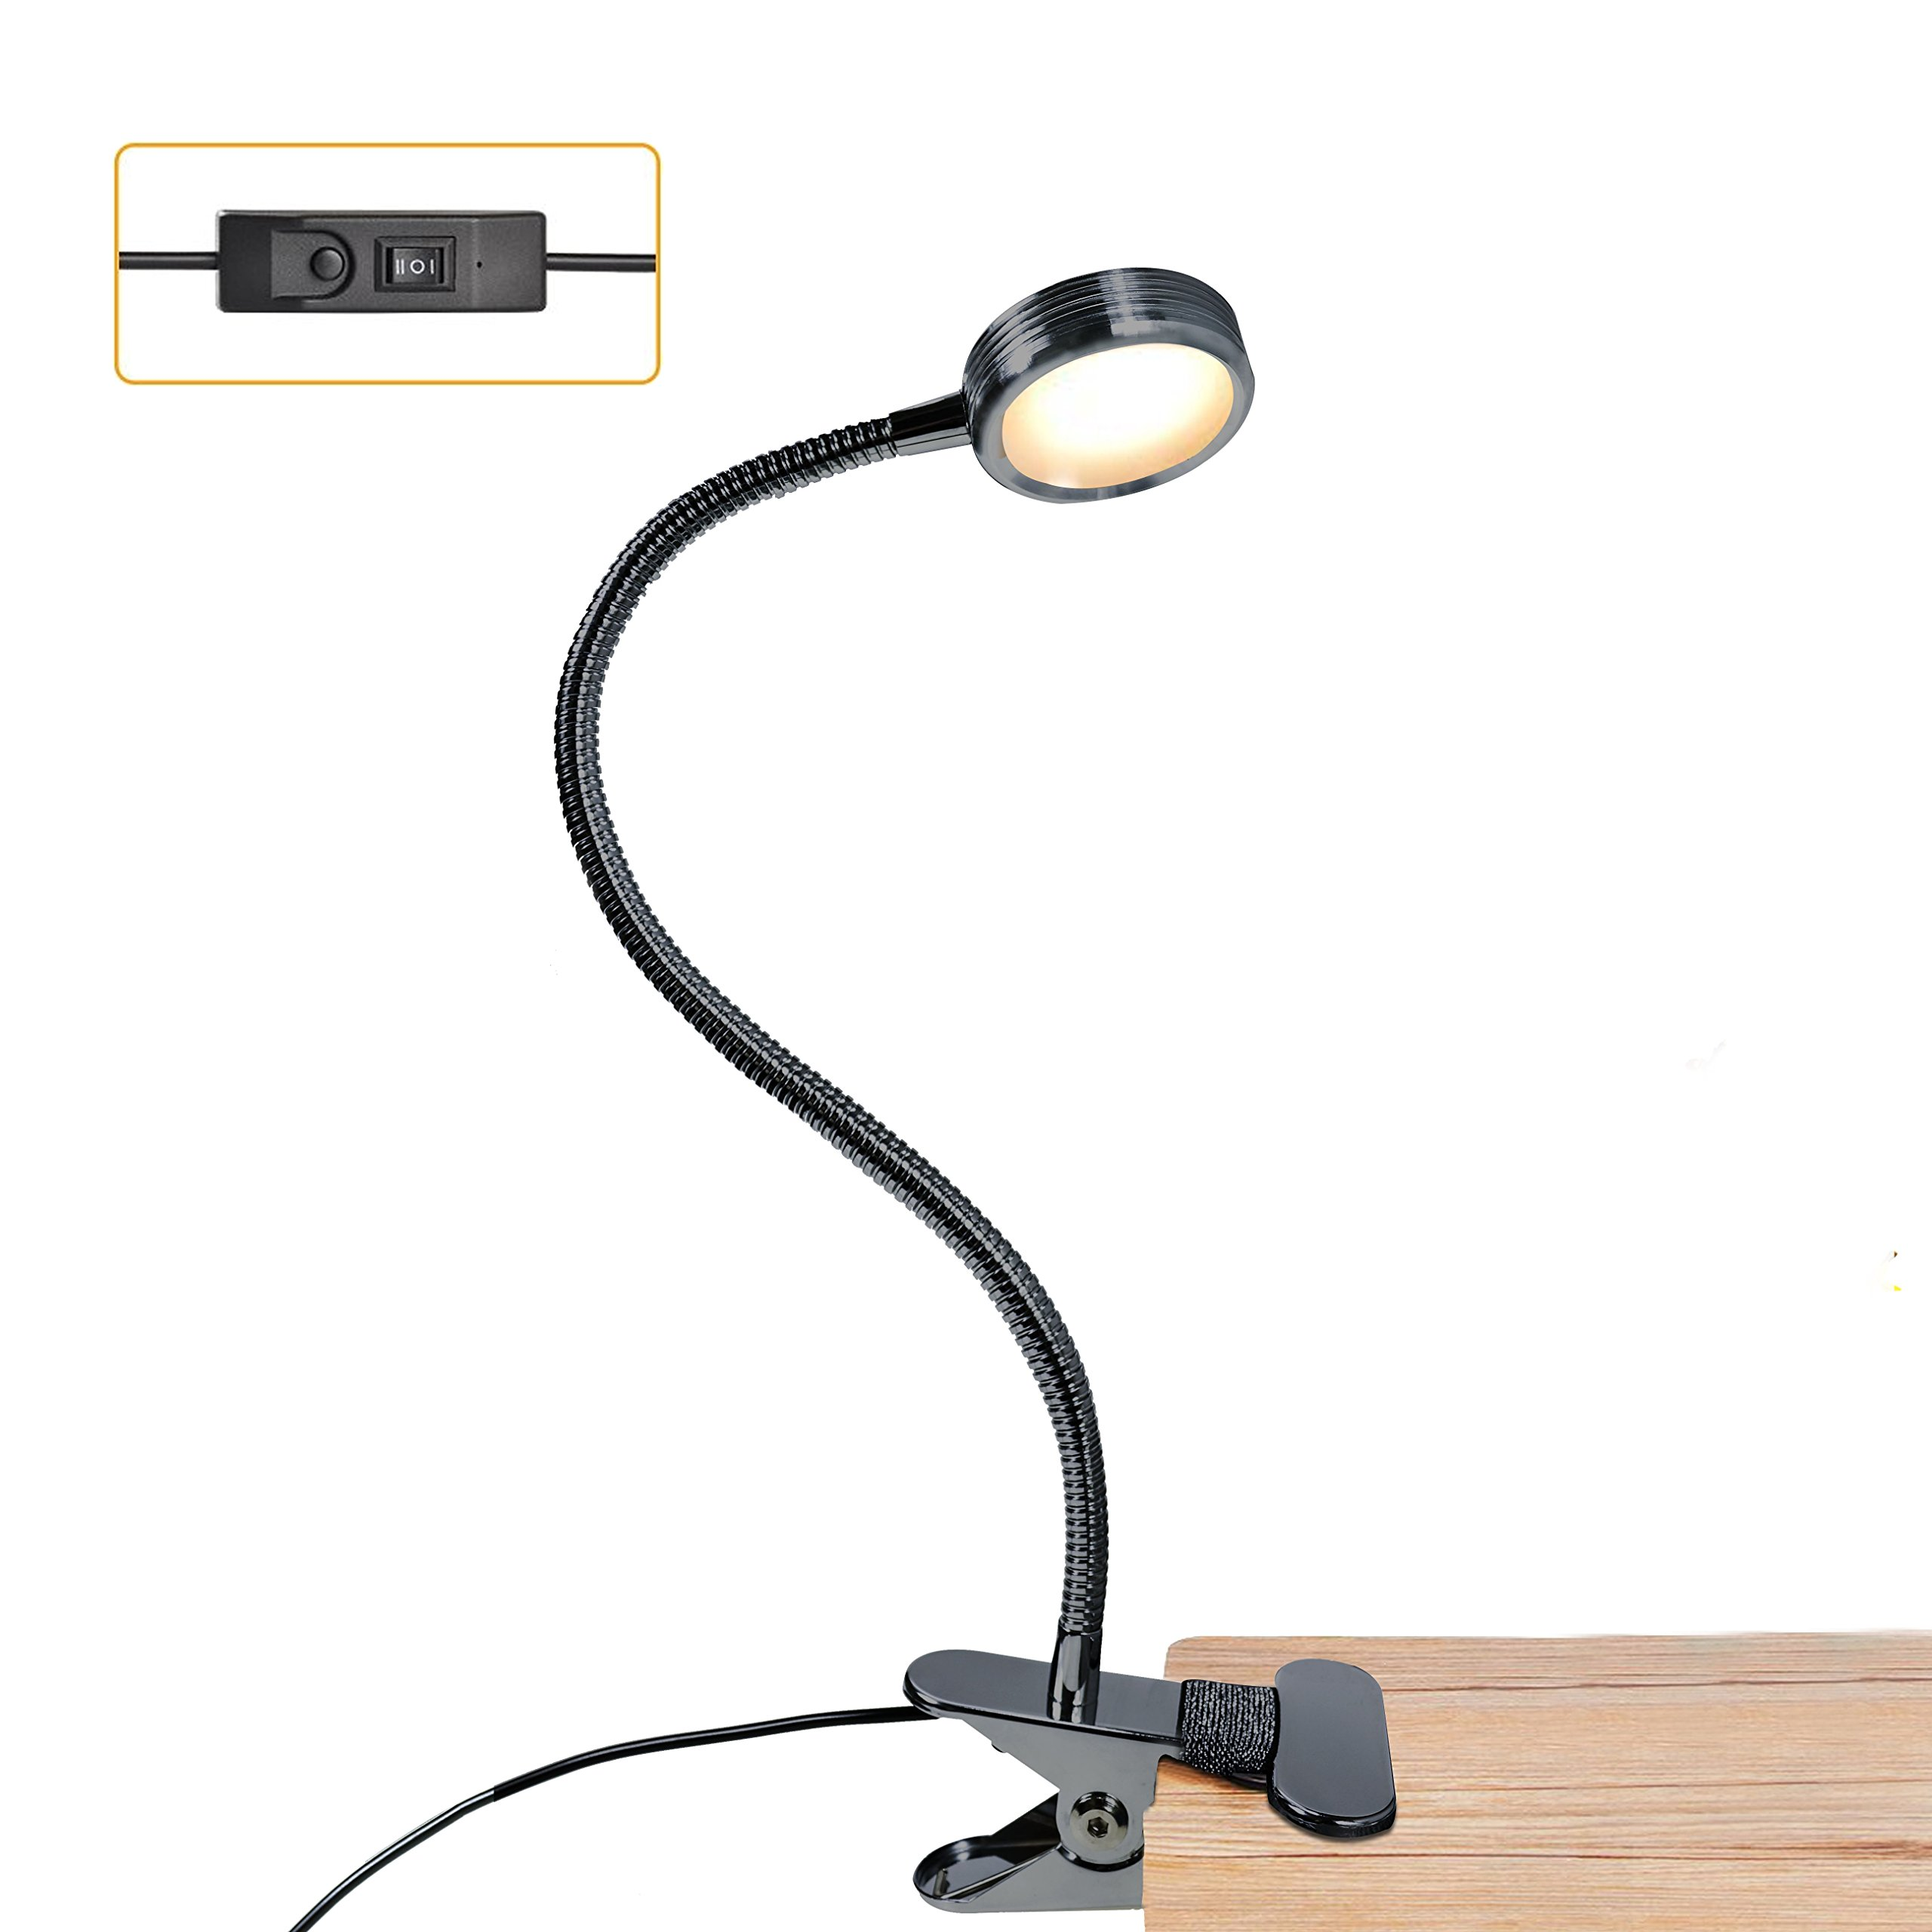 LUXJET LED Book Light Clip On, USB Desk Lamps, 3 Light Color Modes Changeable (Warm White/Daylight / Cool White) for Bunk Bed, Headboard,Computers,Bookshelf or Book Reading at Night